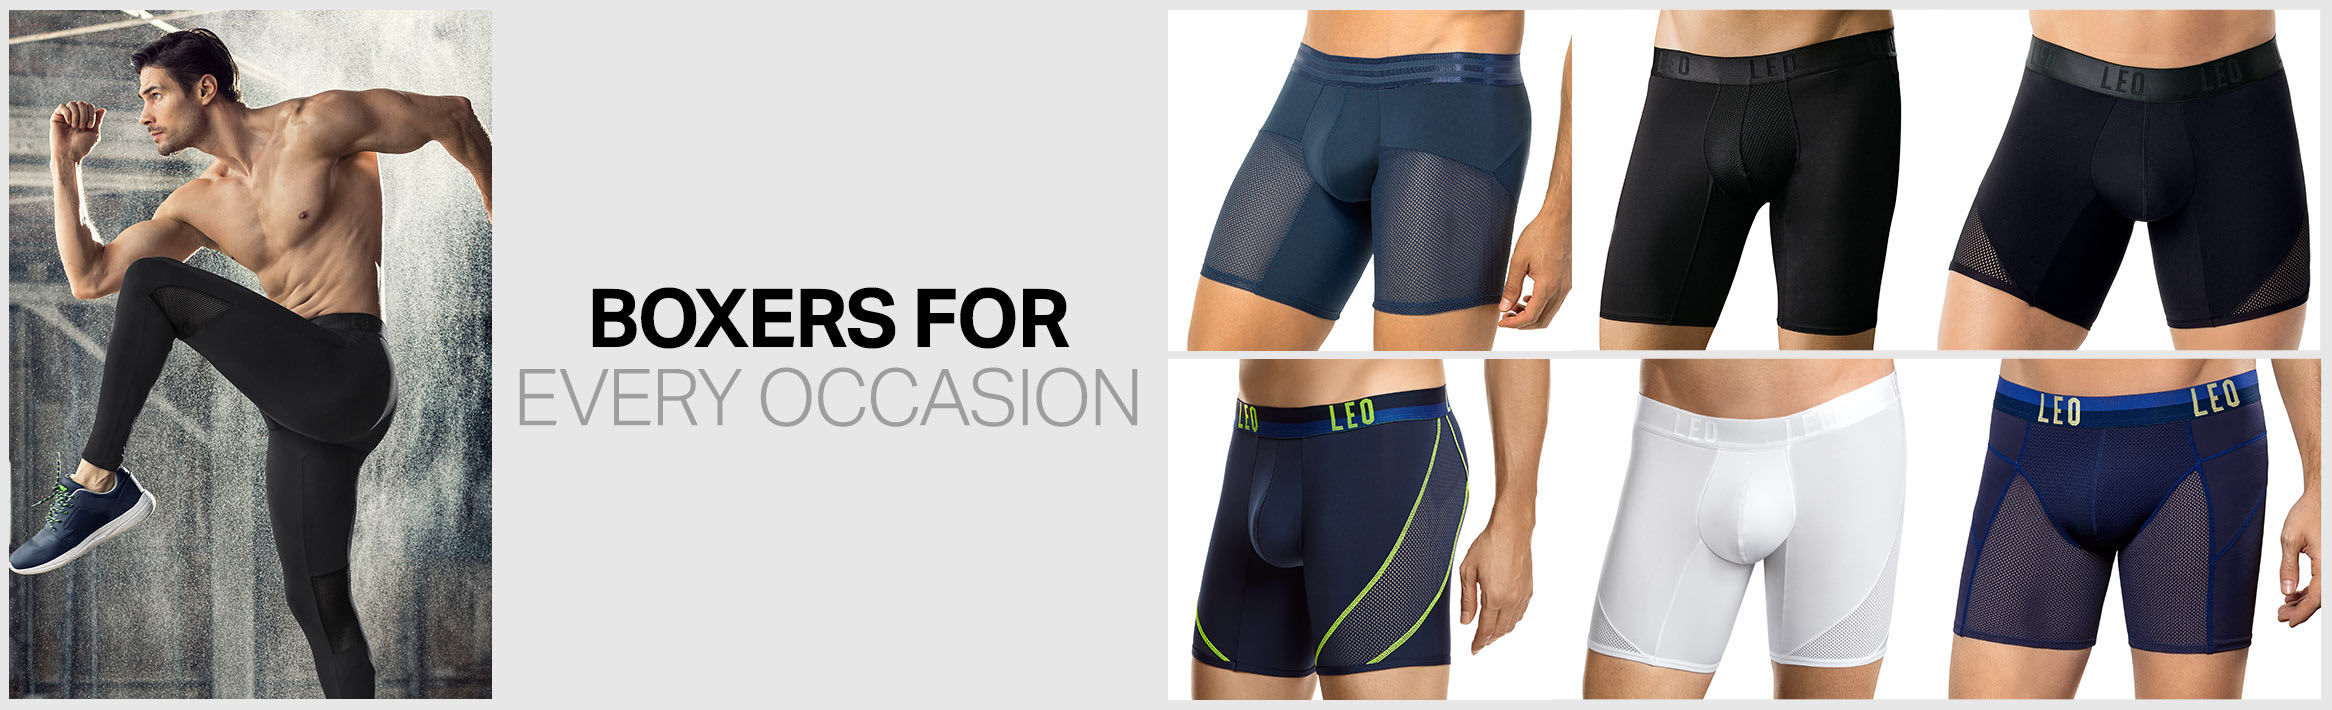 All-Occasion Boxers and Activewear